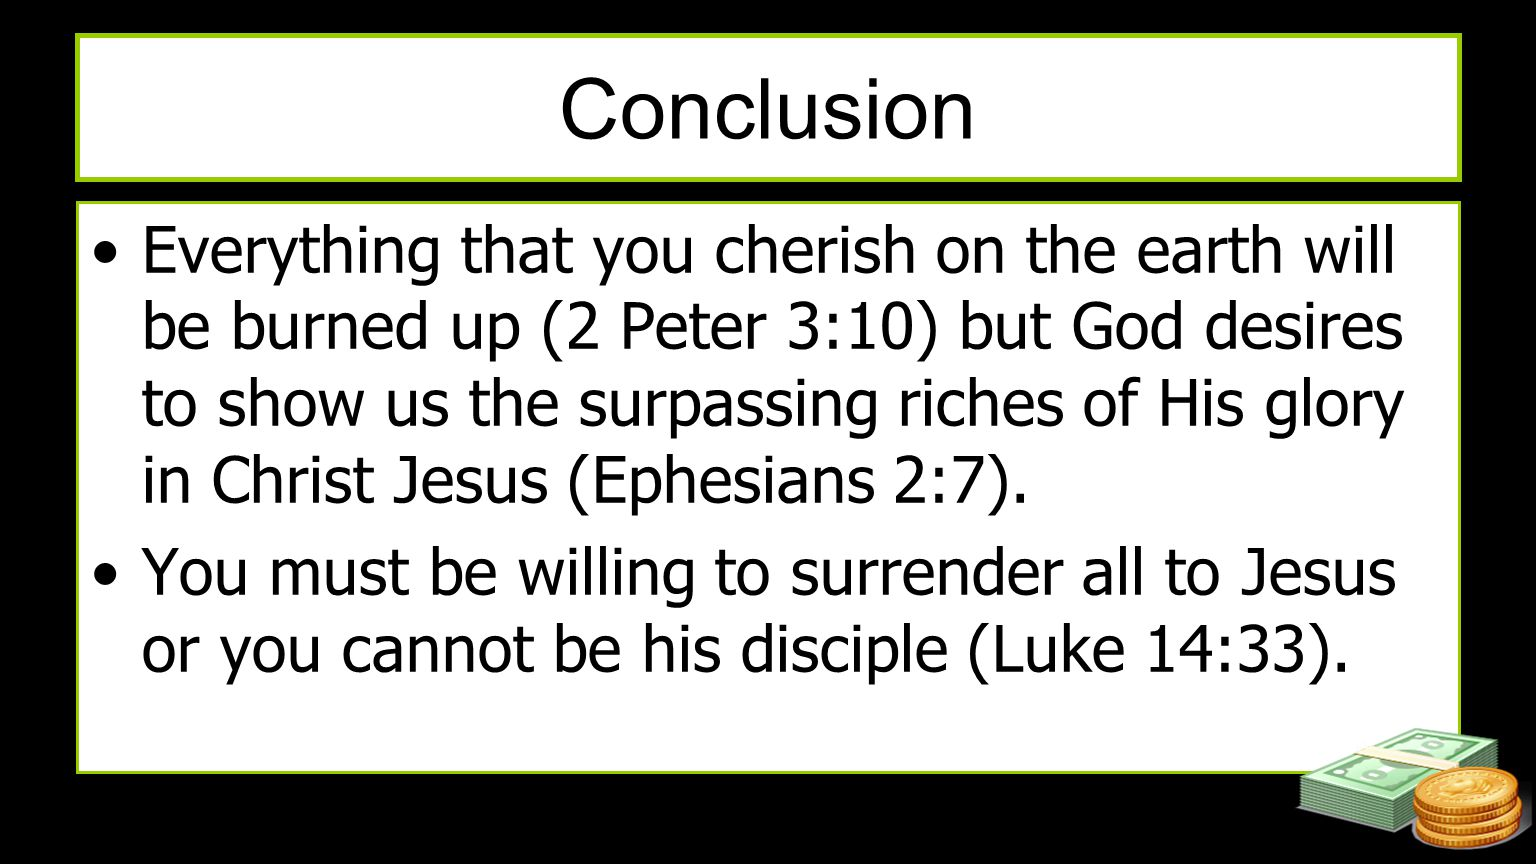 Conclusion Everything that you cherish on the earth will be burned up (2 Peter 3:10) but God desires to show us the surpassing riches of His glory in